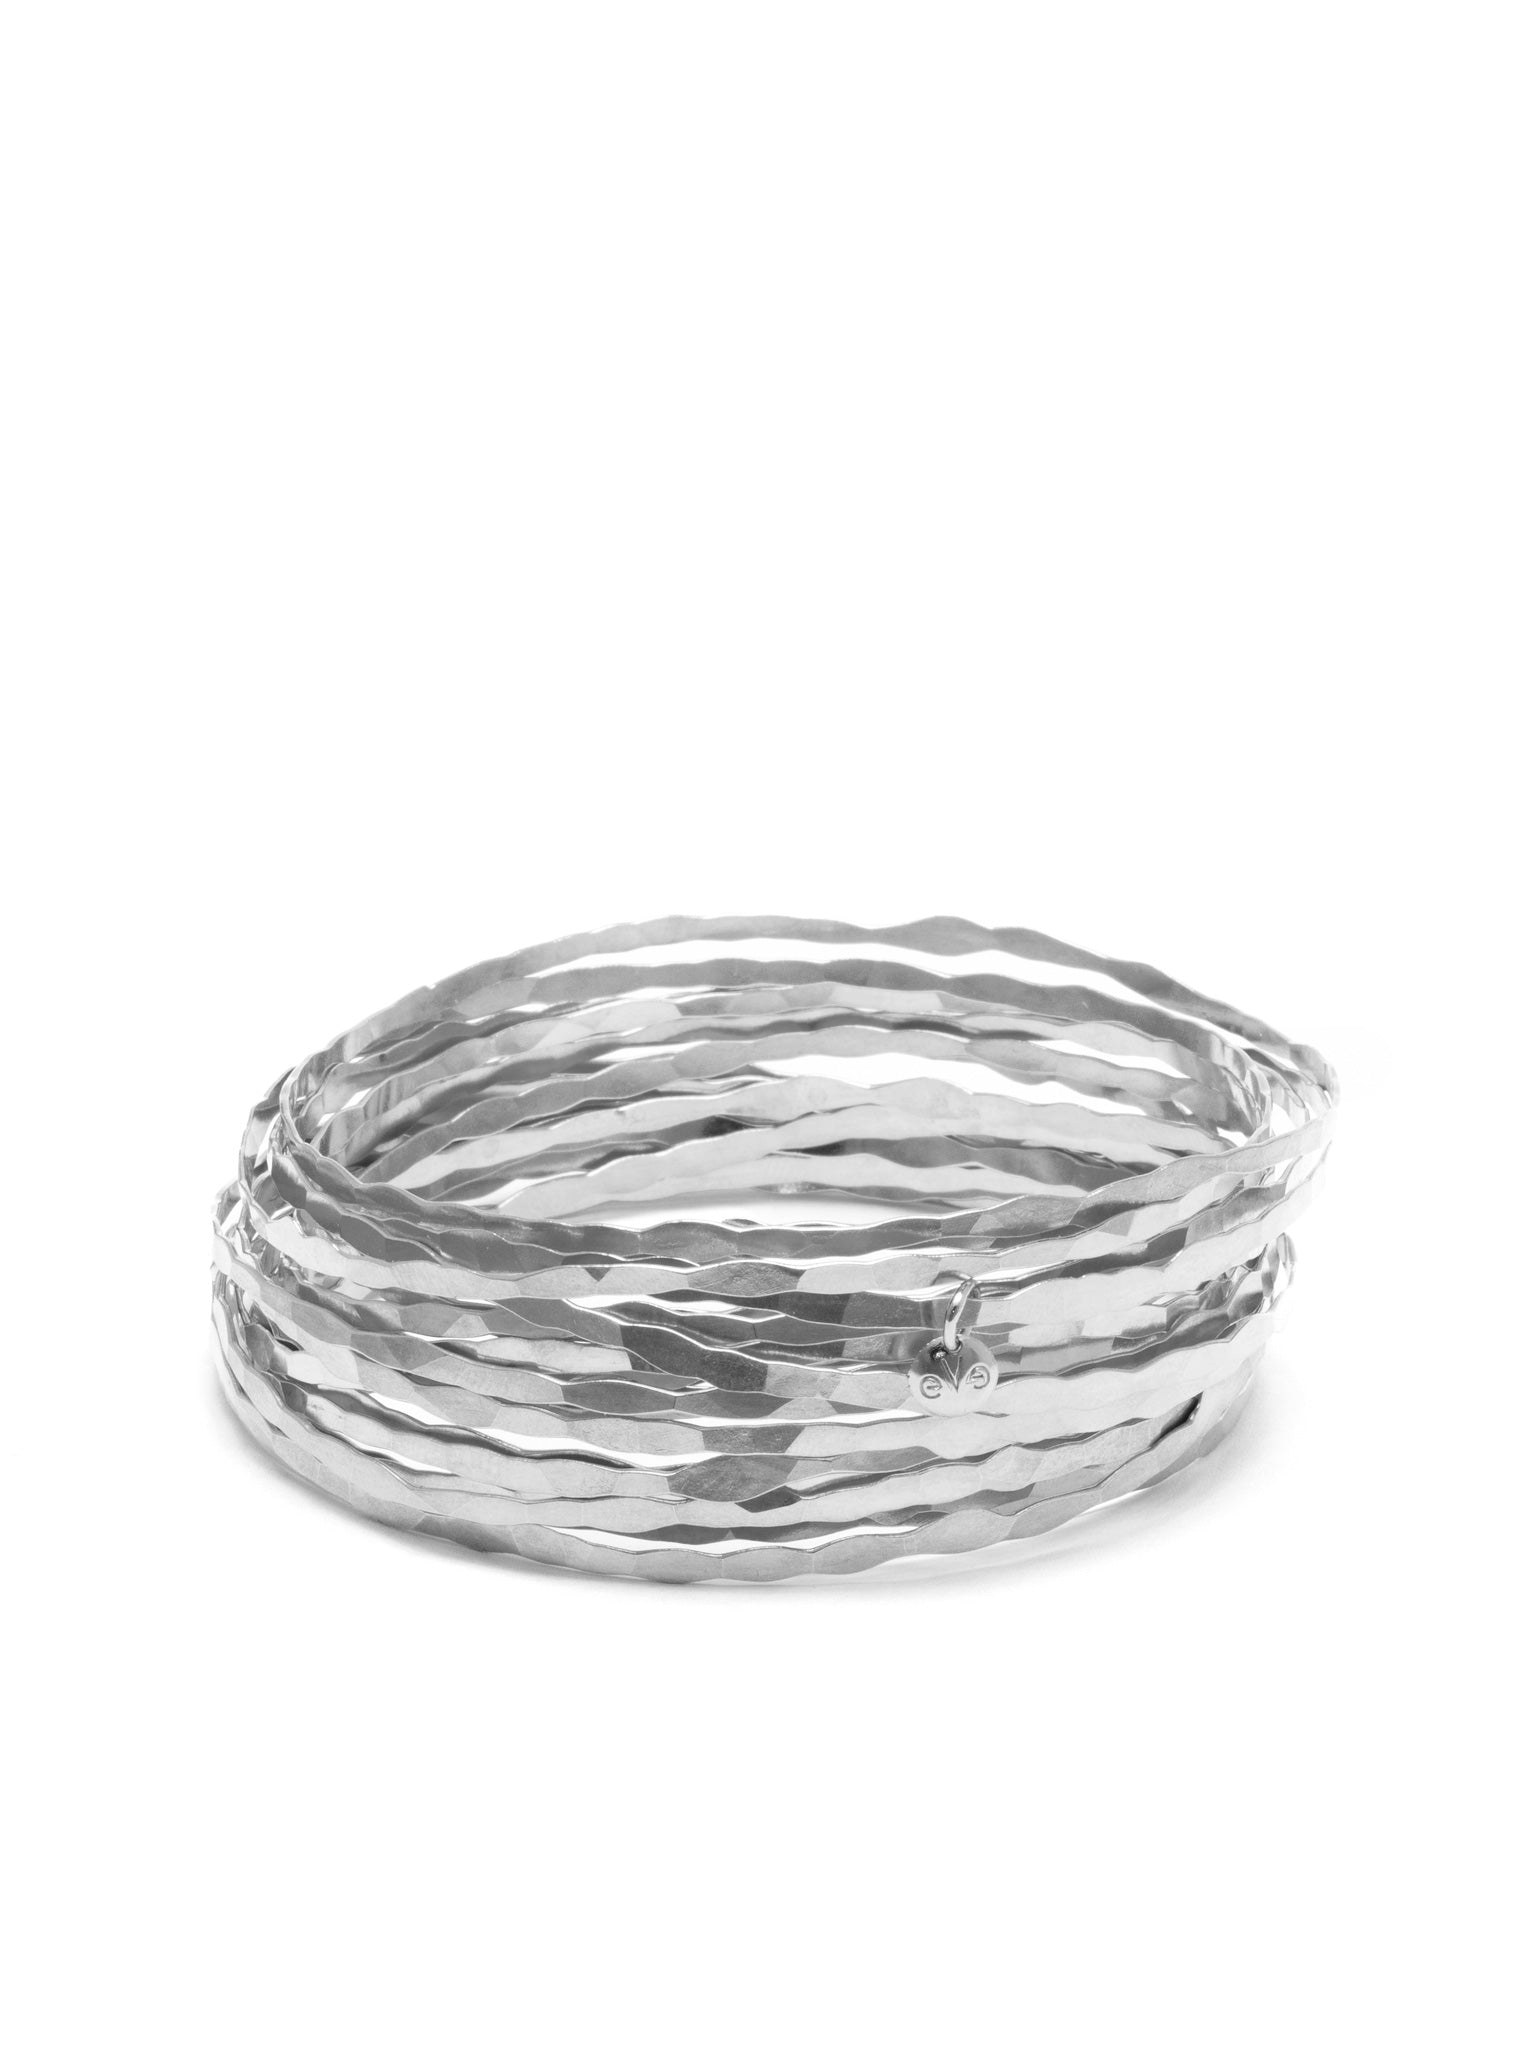 ECHO CHIC - Hammered grass bracelet Rose / rhodium